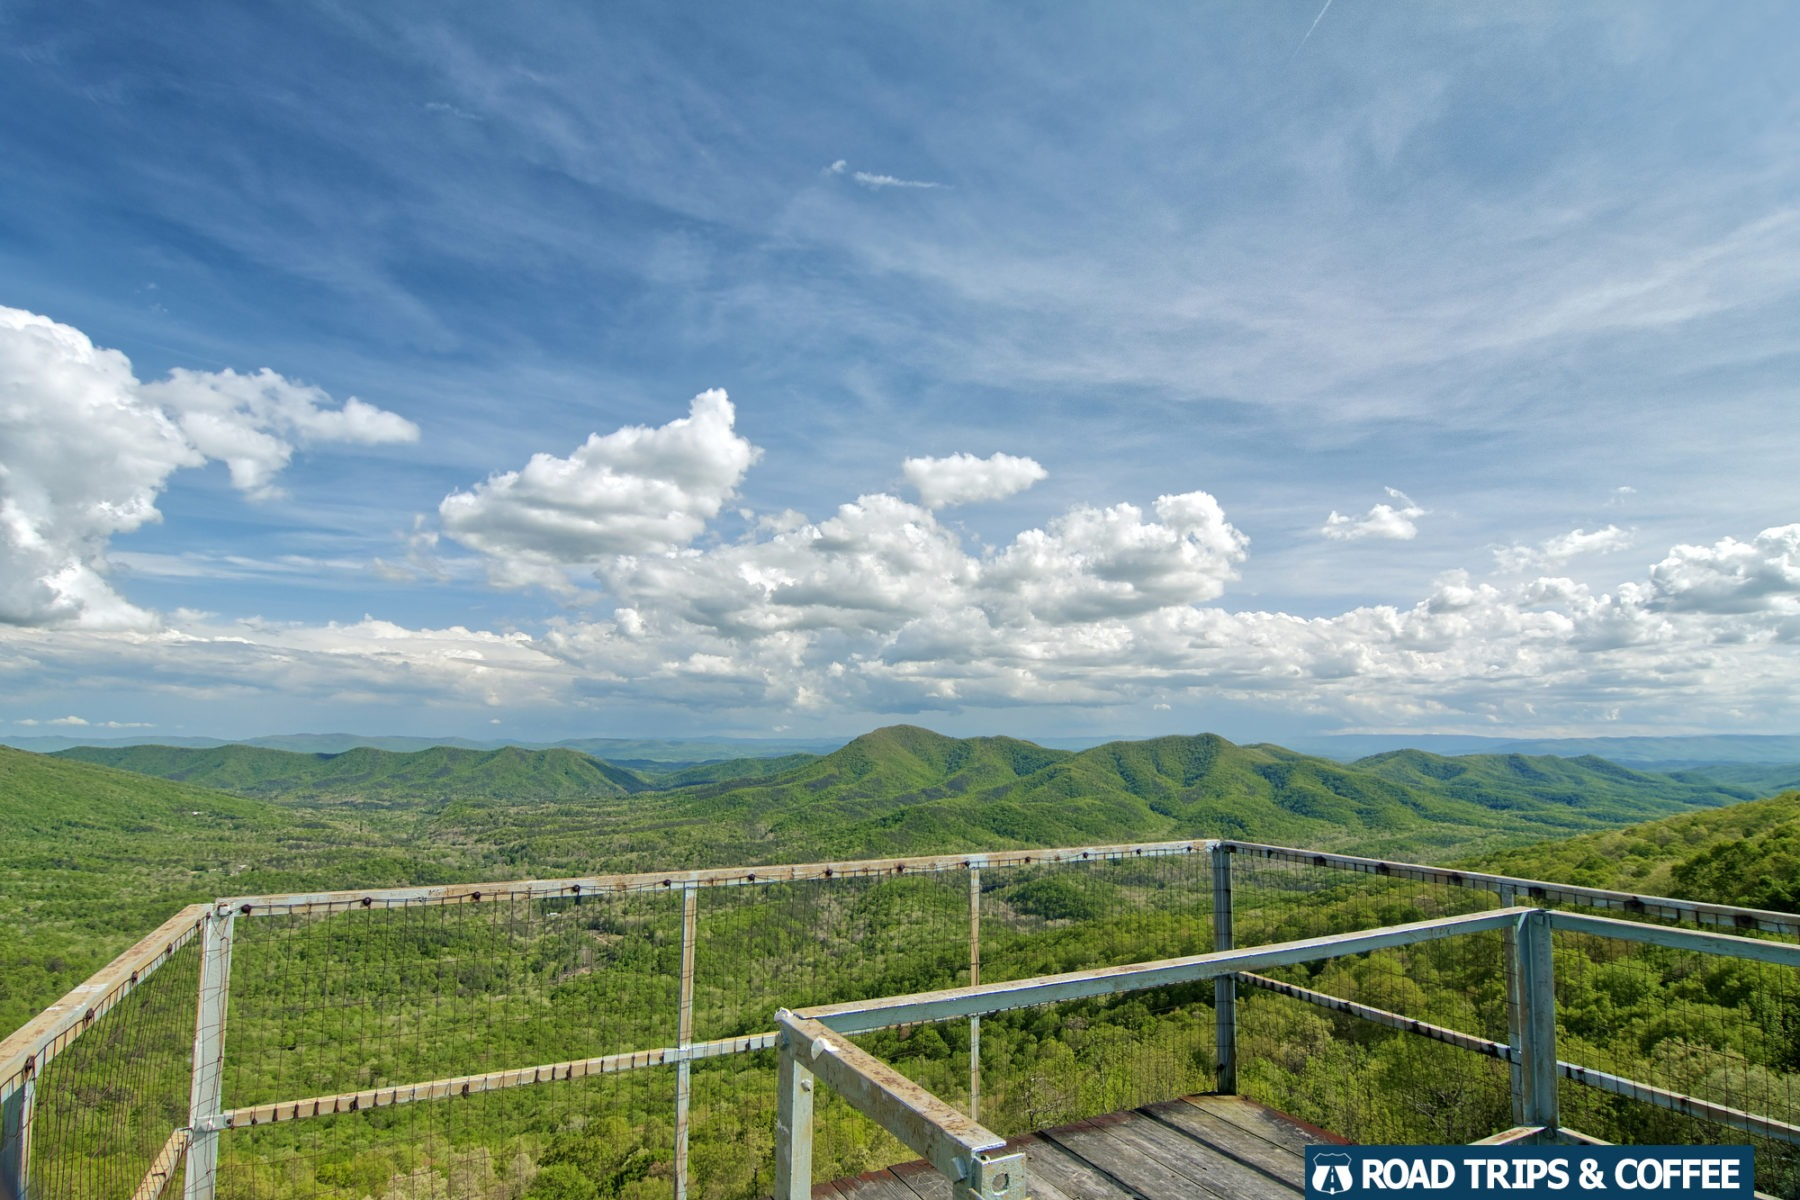 The view across the wooden deck at the top of the Big Walker Lookout in Wytheville, Virginia